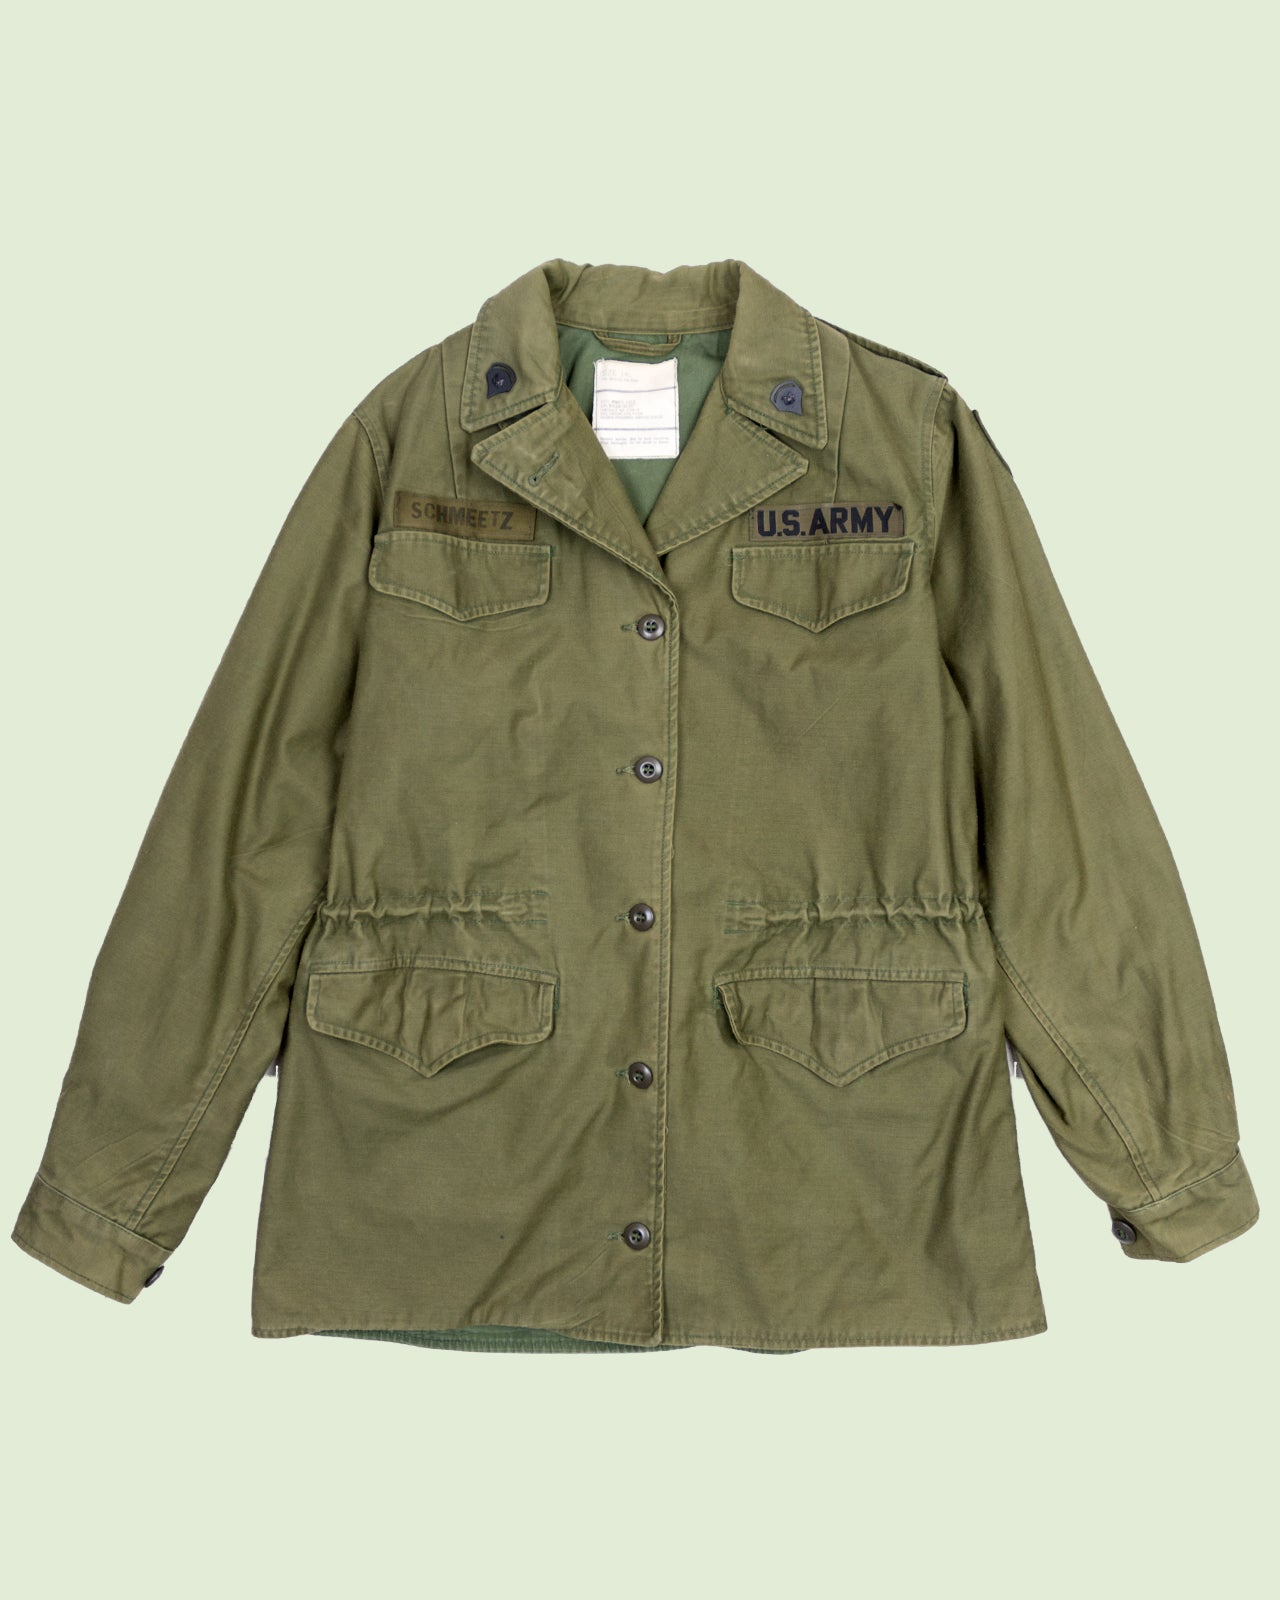 US Army OG-107 Coat Women (L)